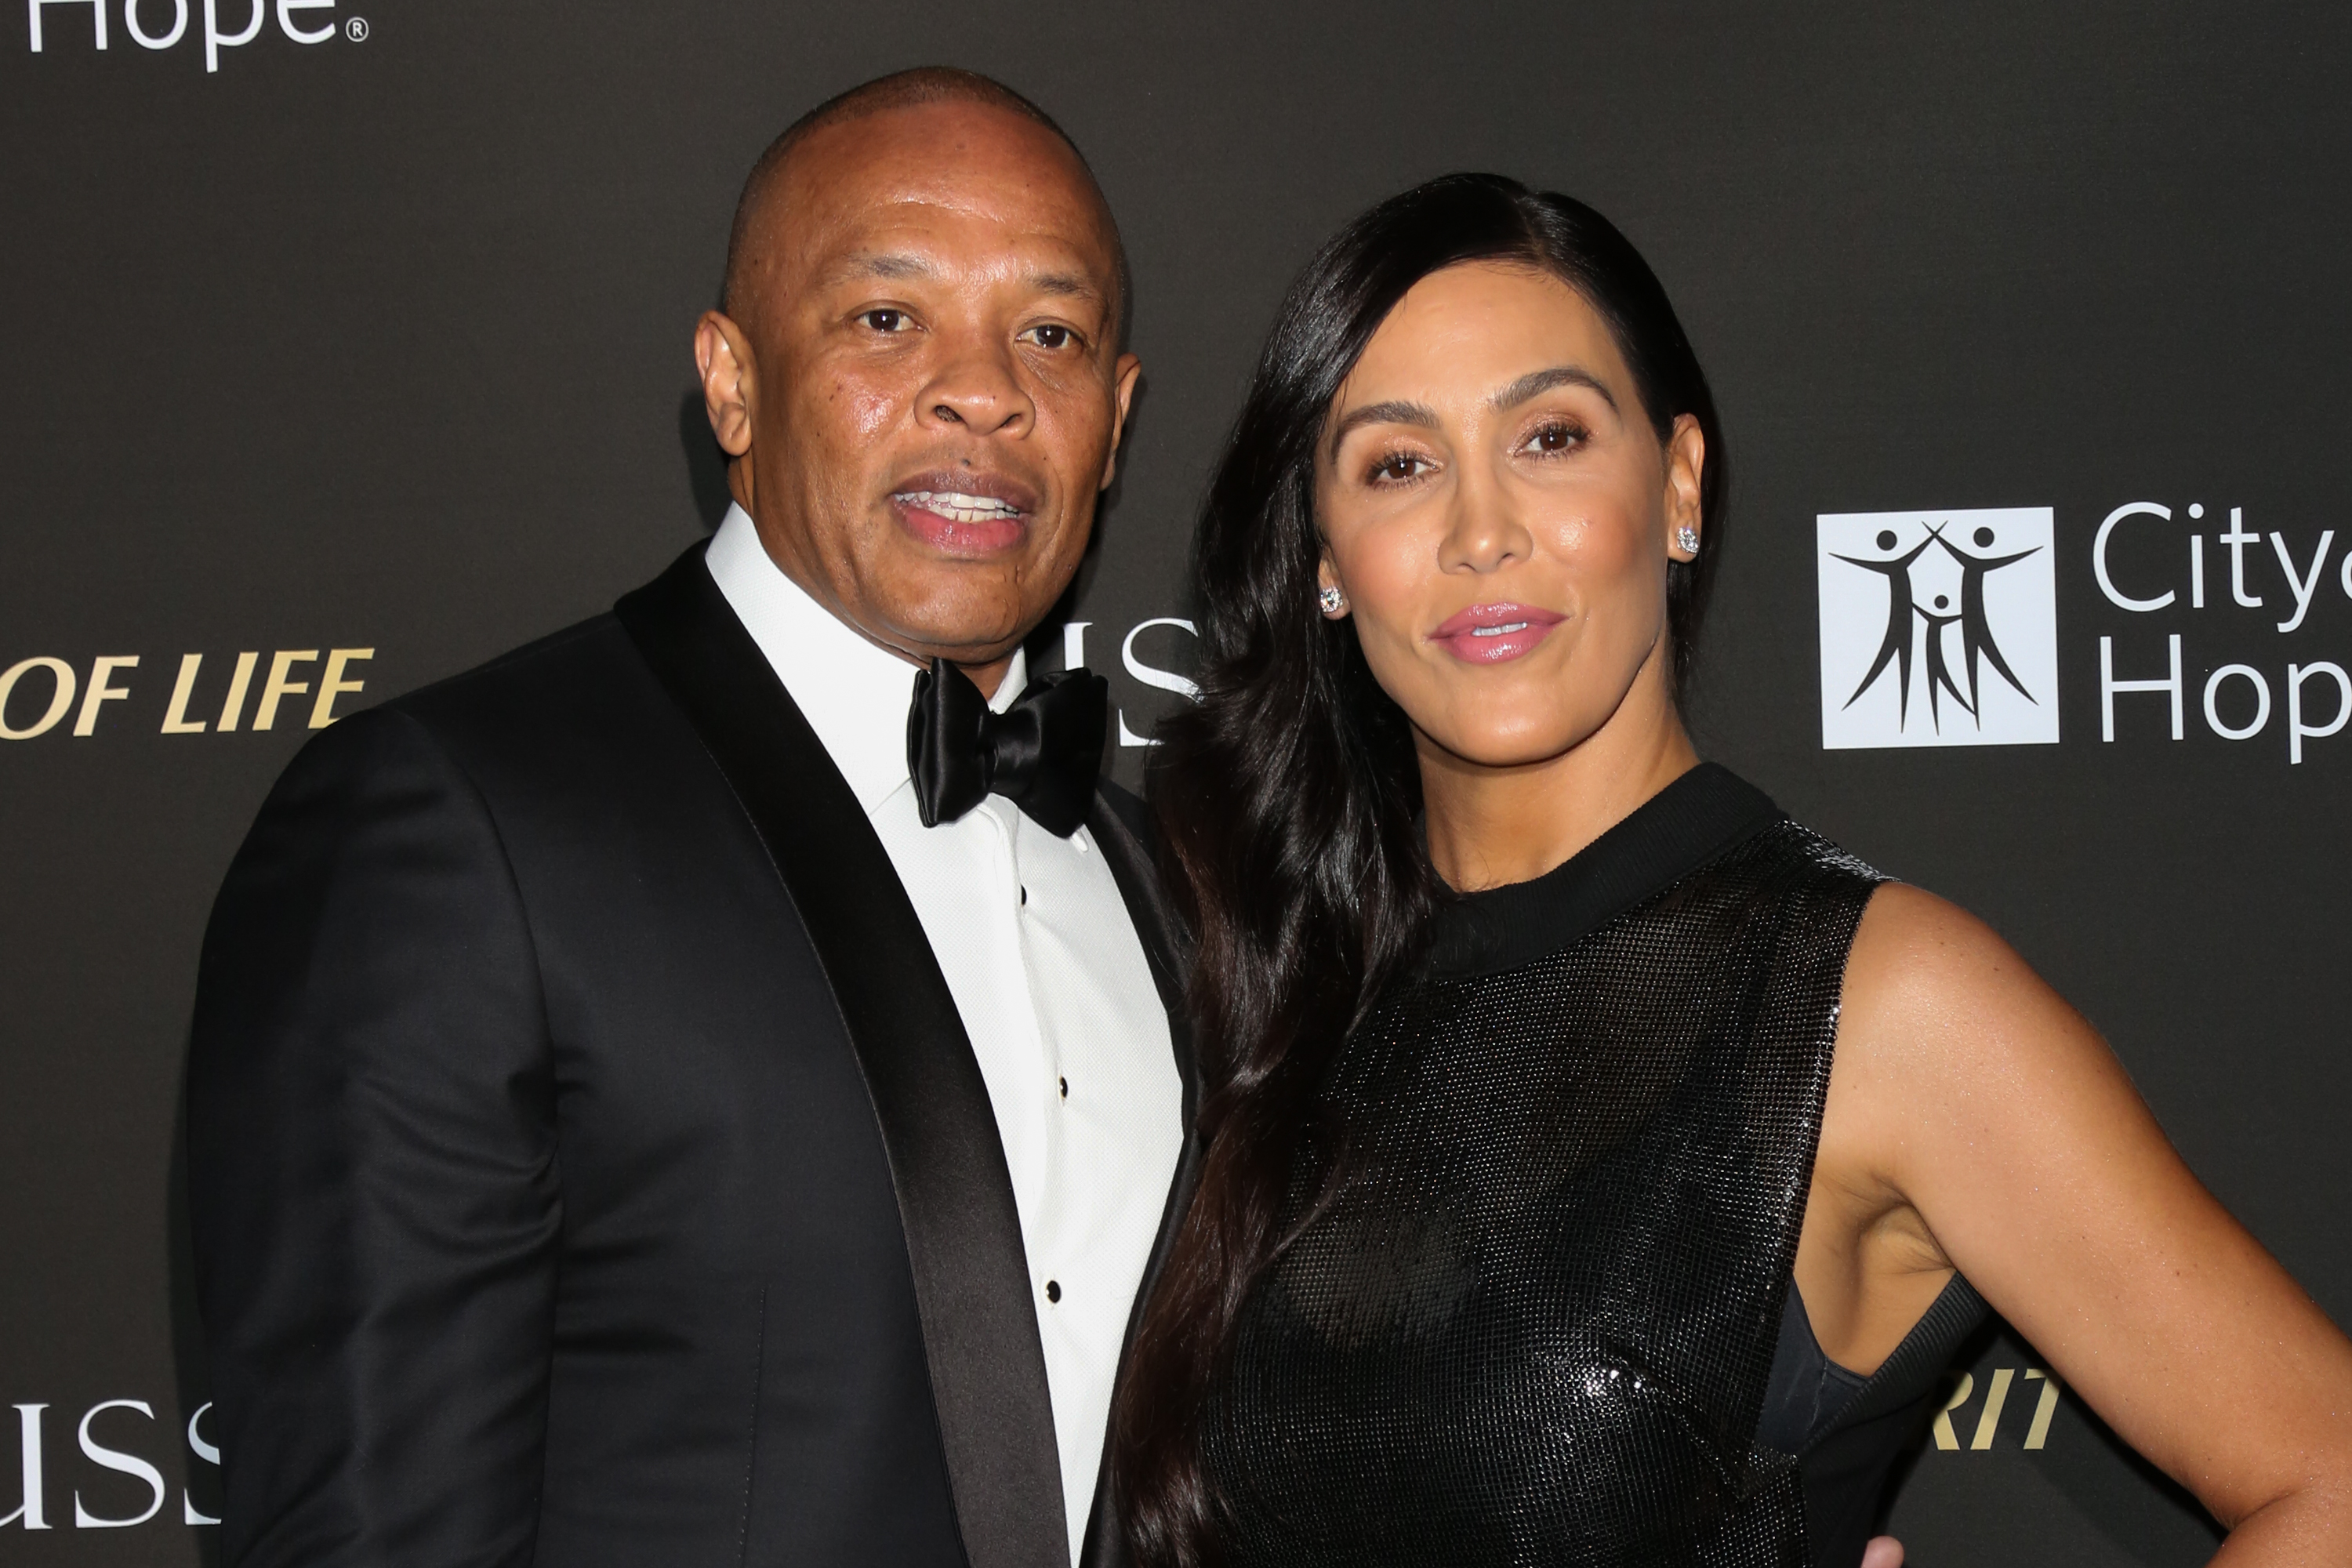 Why Nicole Young is seeking $2M monthly from Dr. Dre amid divorce